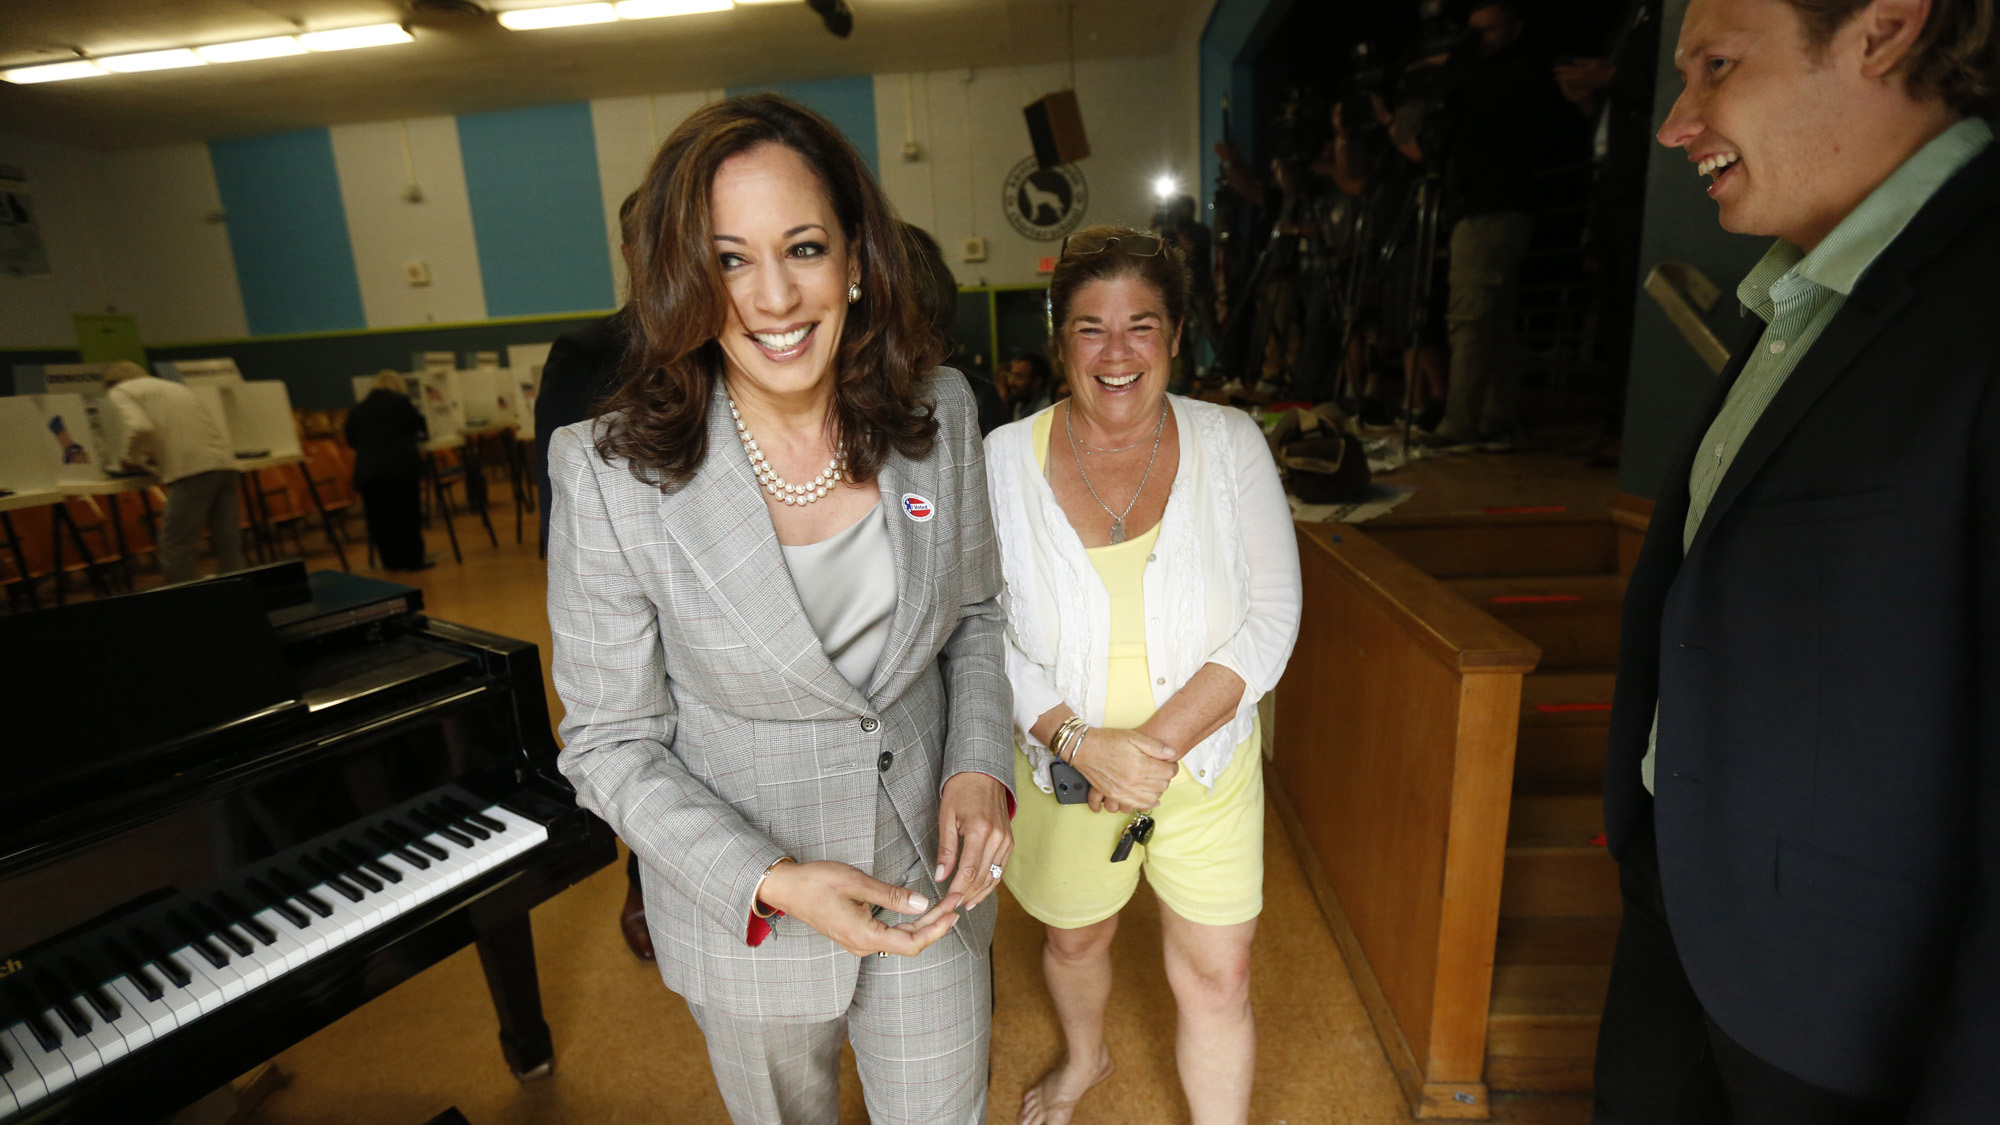 California AG Kamala Harris Campaigns For U.S. Senate Seat